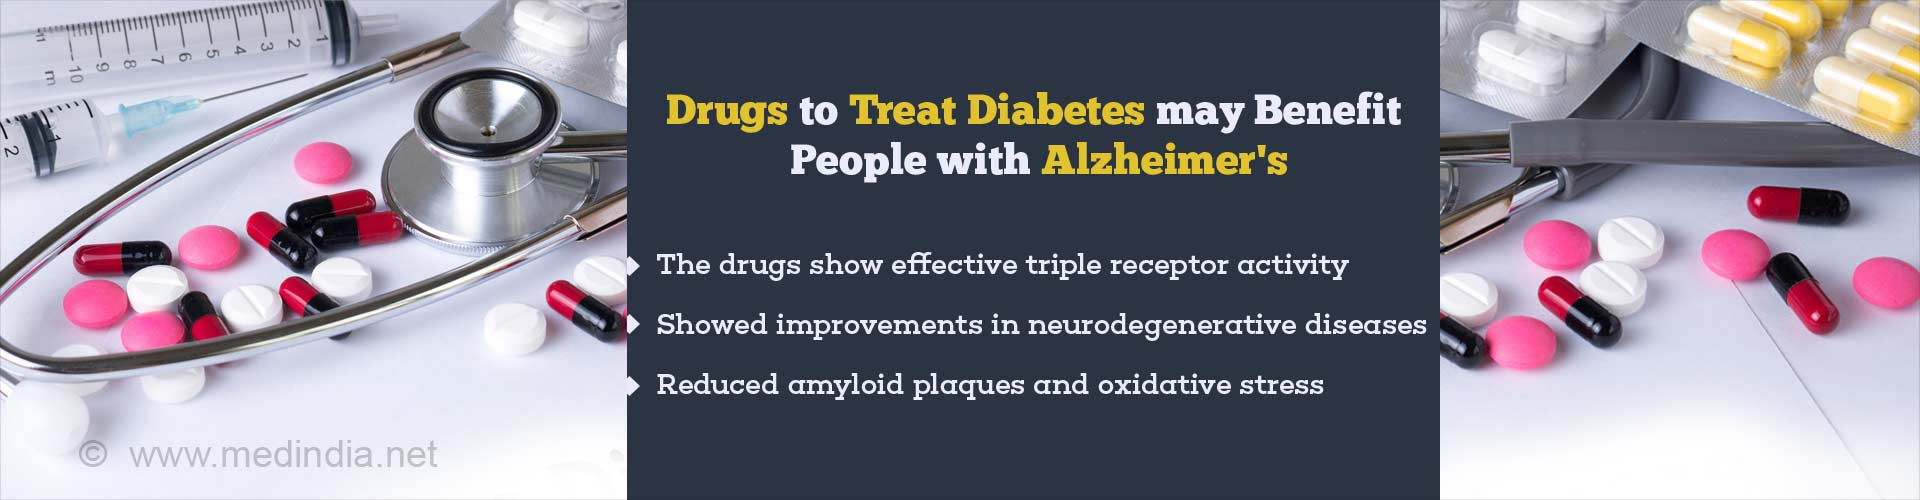 Type 2 Diabetes Drug Study Showed Improvement In Alzheimer's Patients